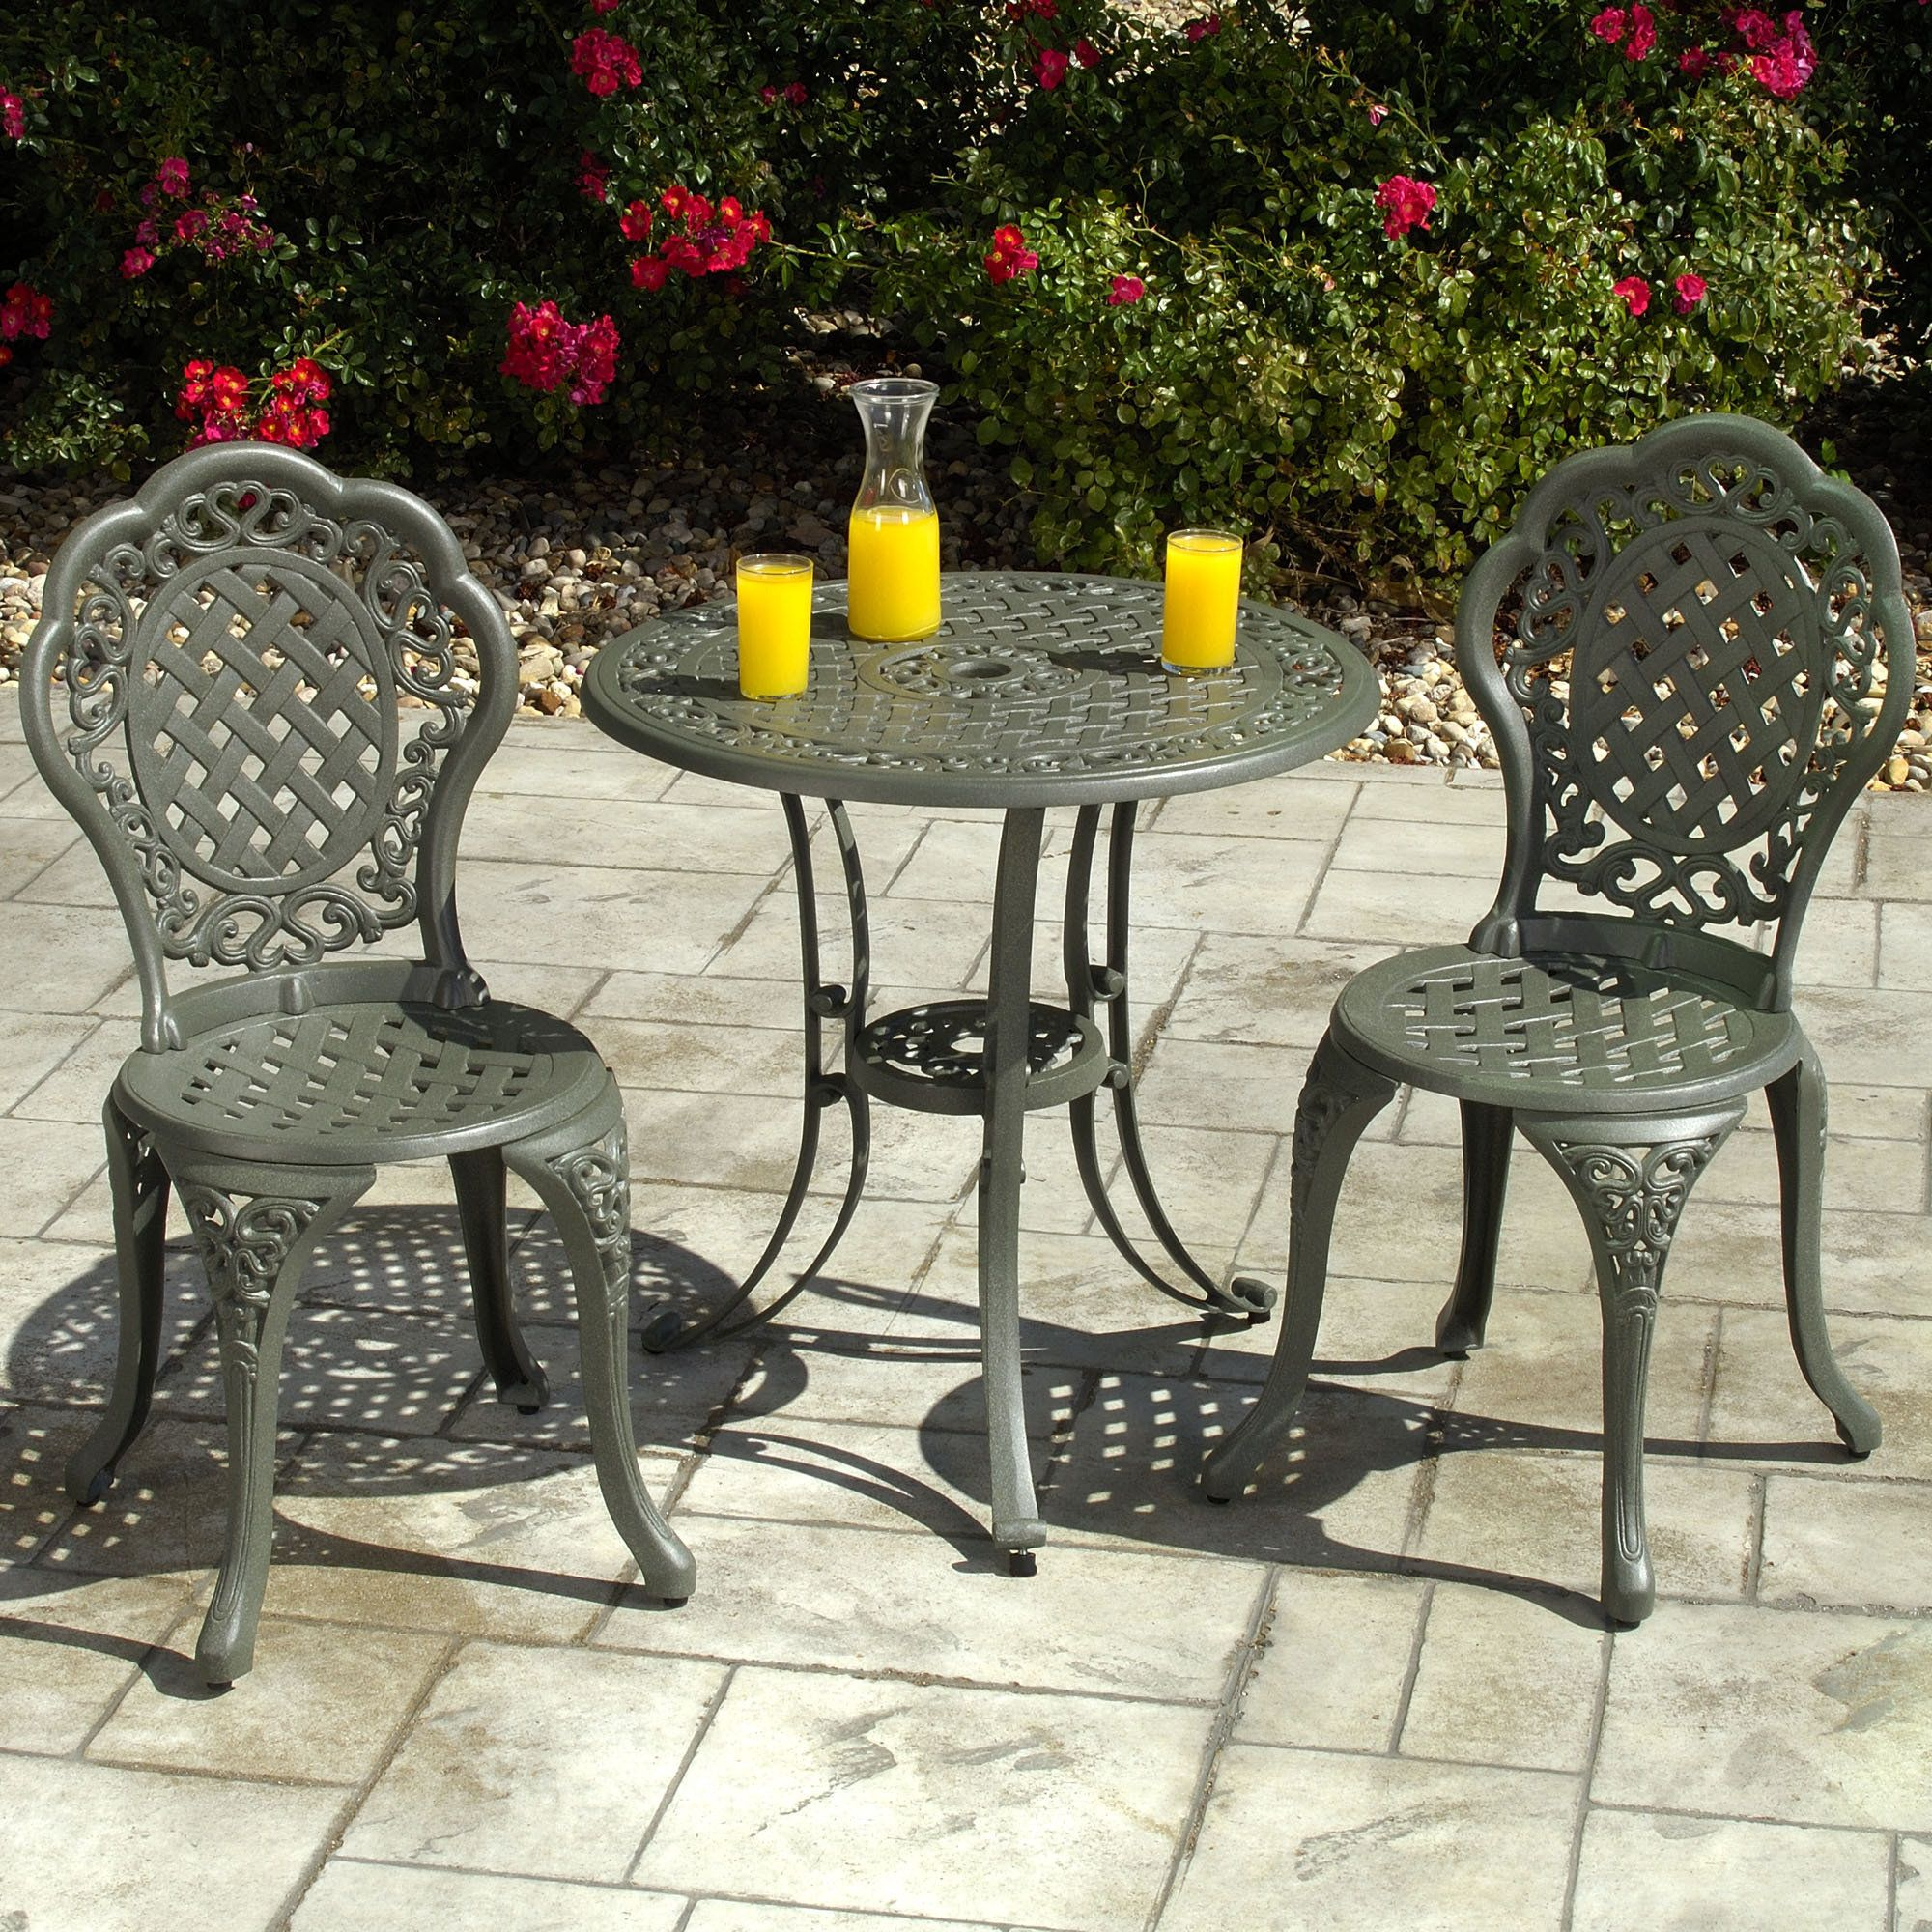 Bistro Table And Chairs Outdoor outdoor bistro table and 2 chairs - interior | home interior